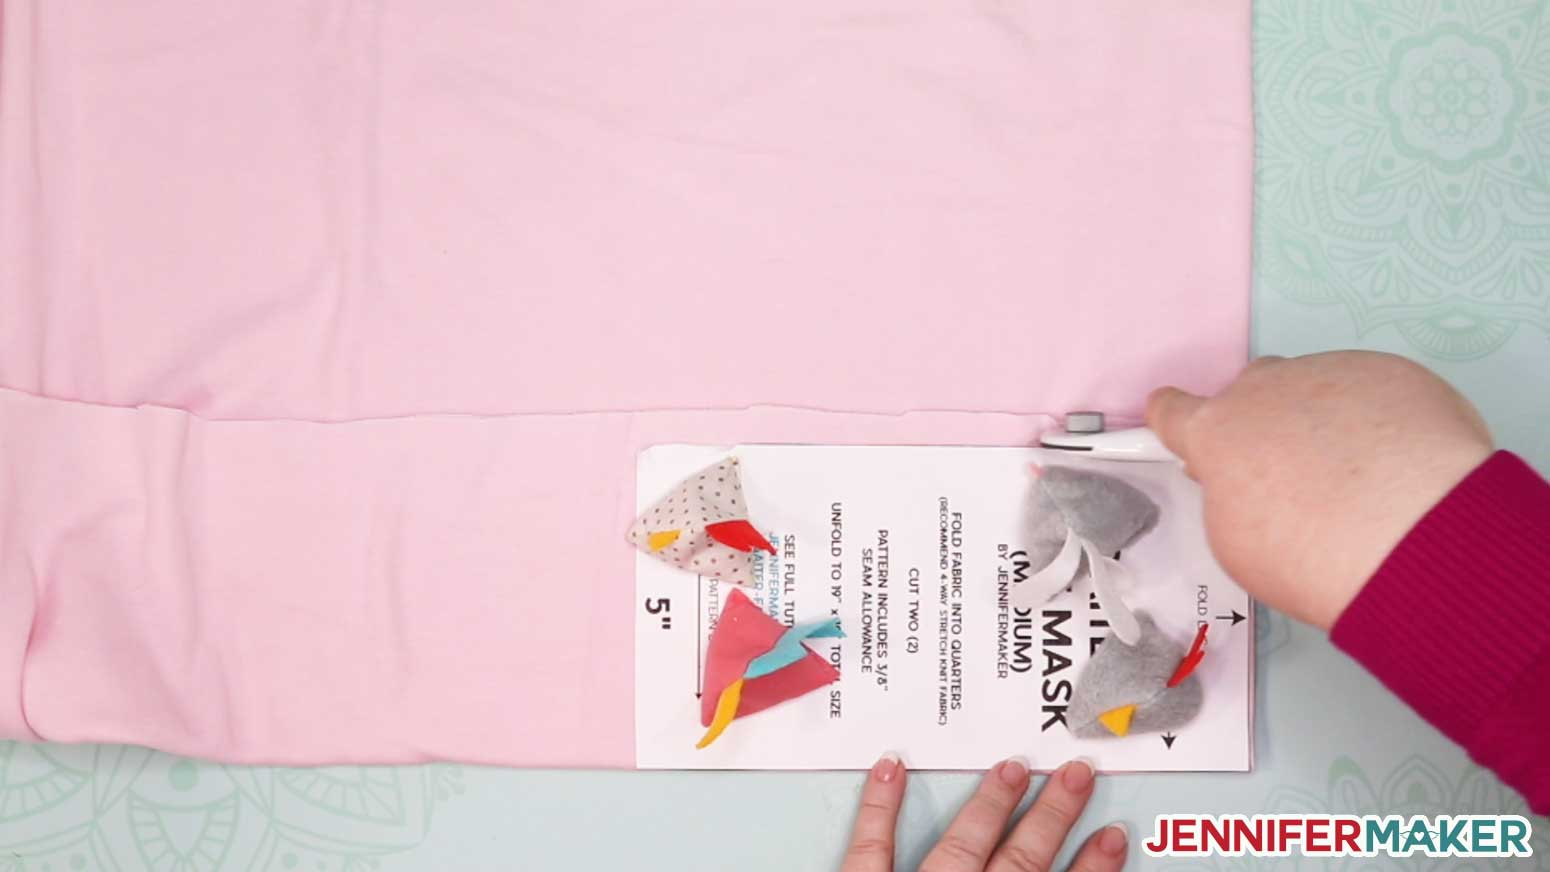 Cutting pink knit fabric with a rotary cutter to make a DIY gaiter face mask